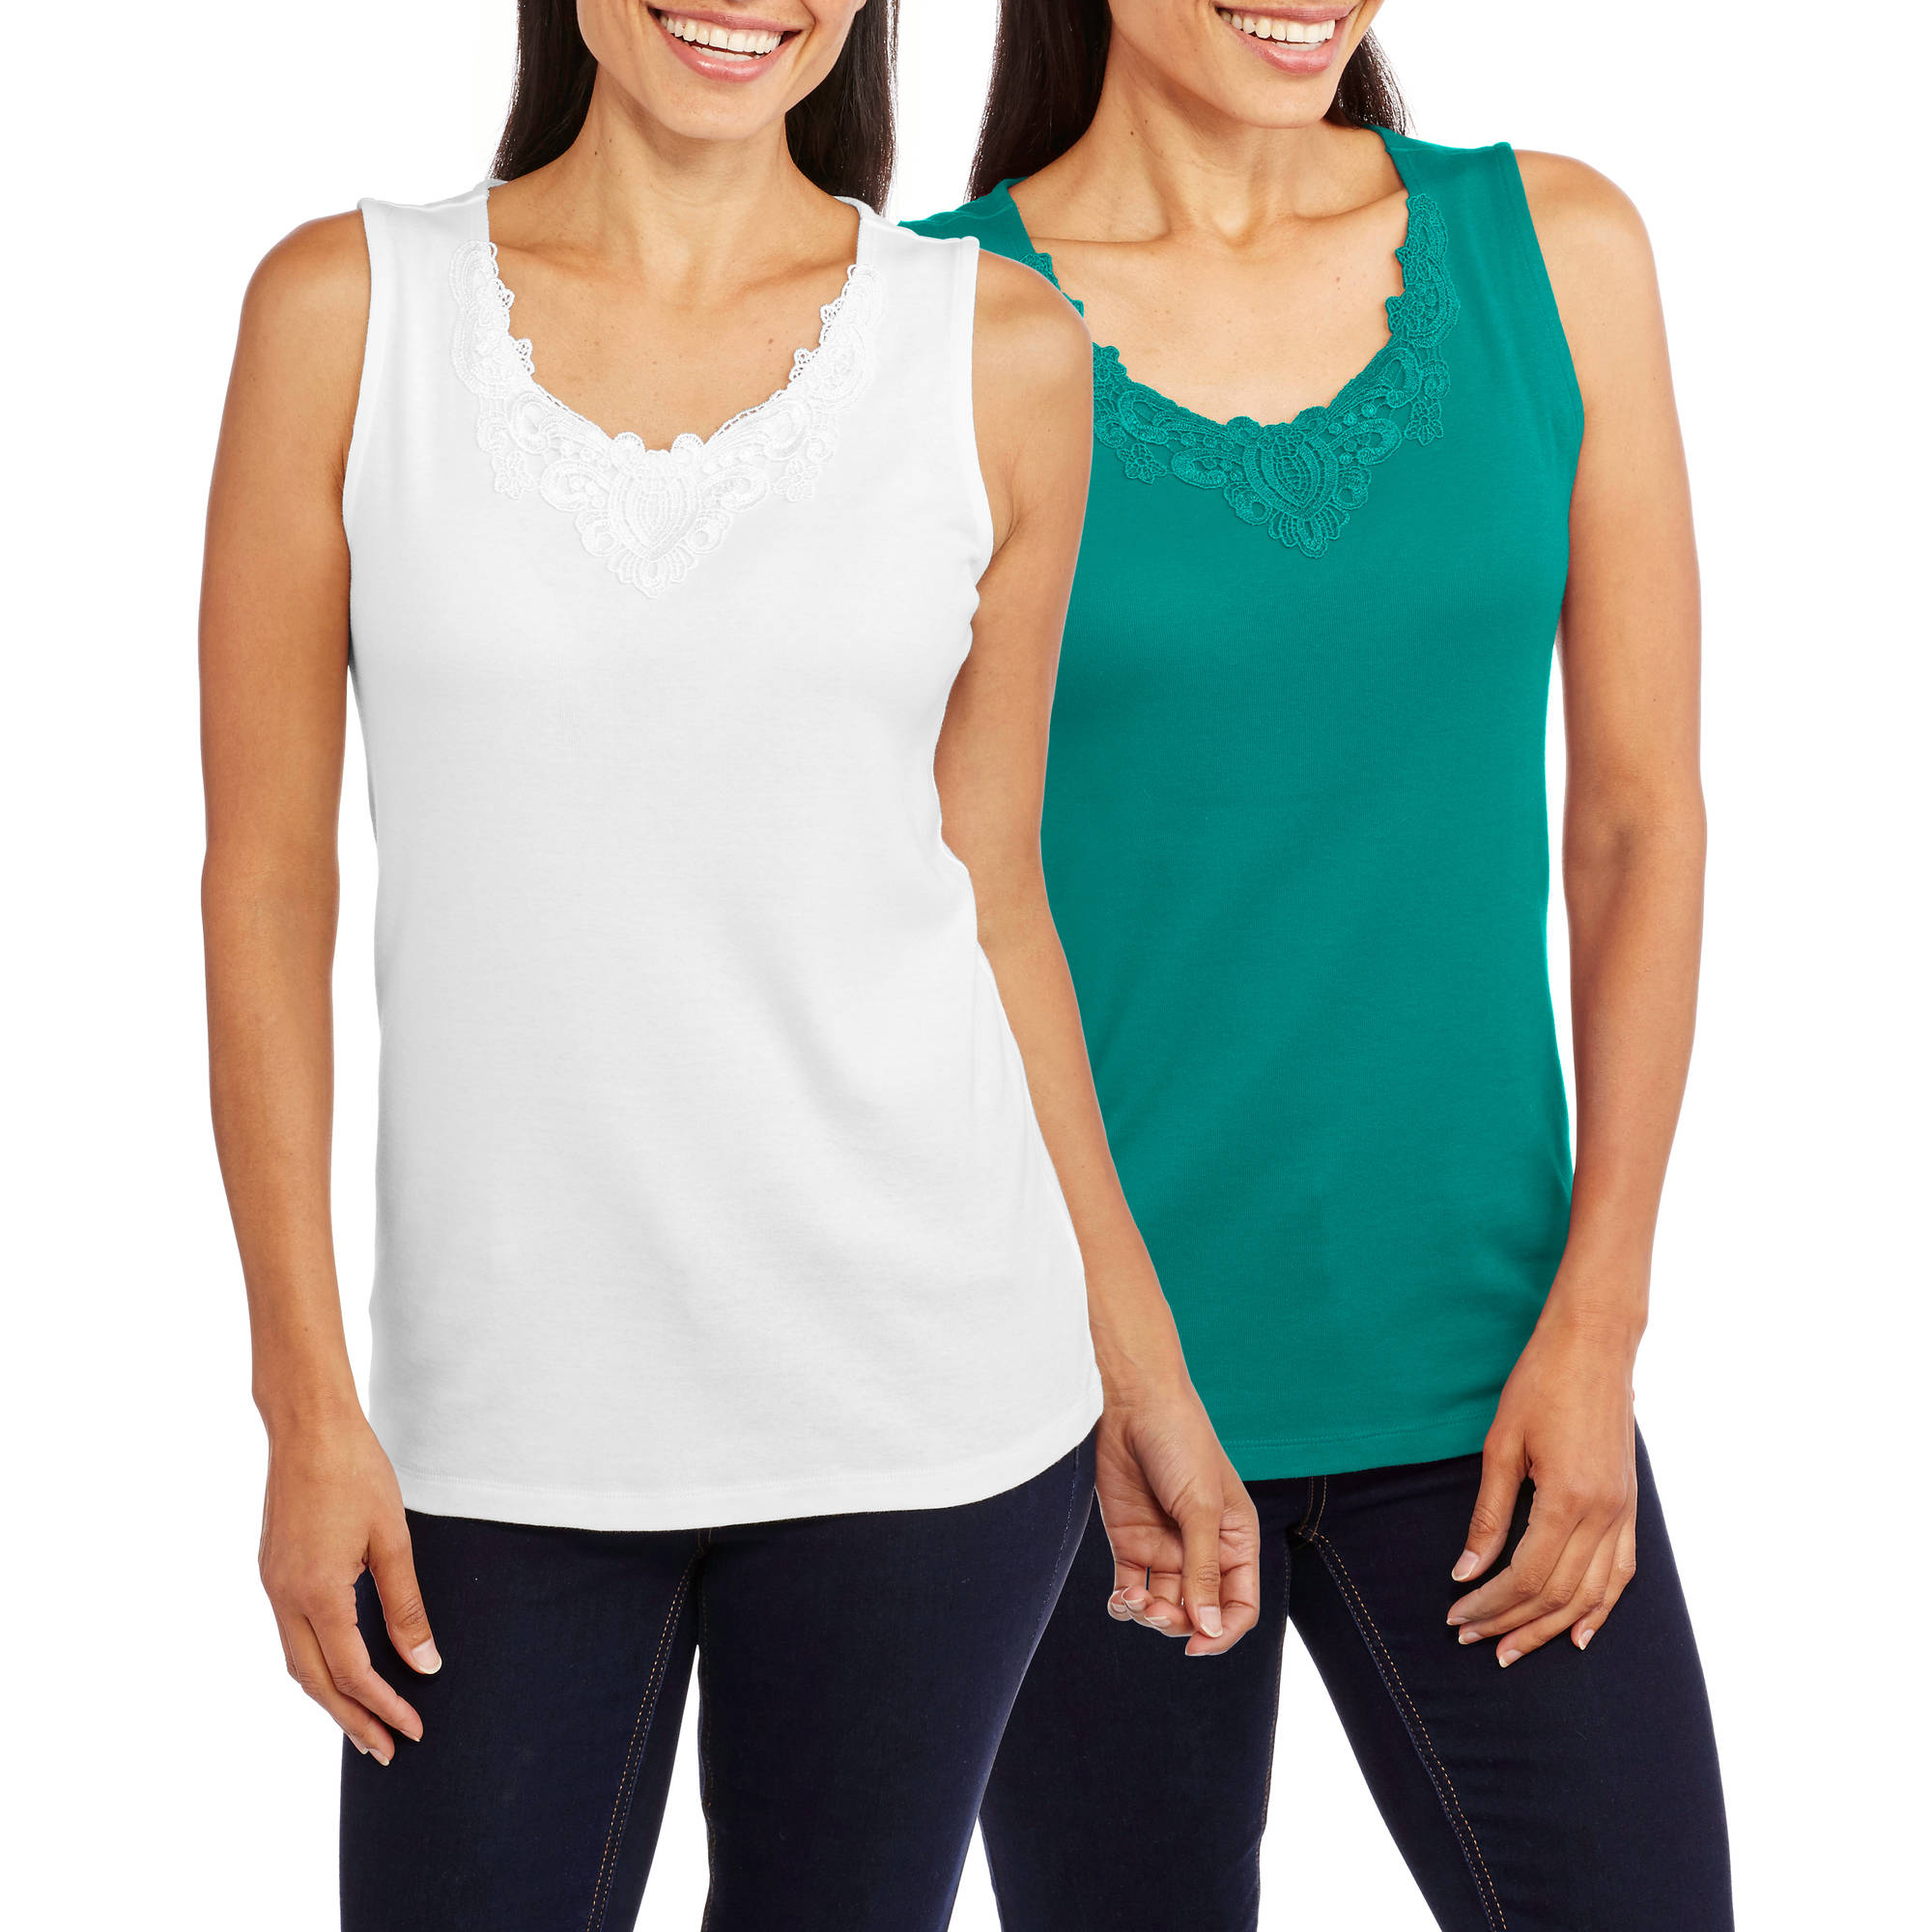 White Stag Women's Lace Trim Medallion Tank, 2 Pack Value Bundle